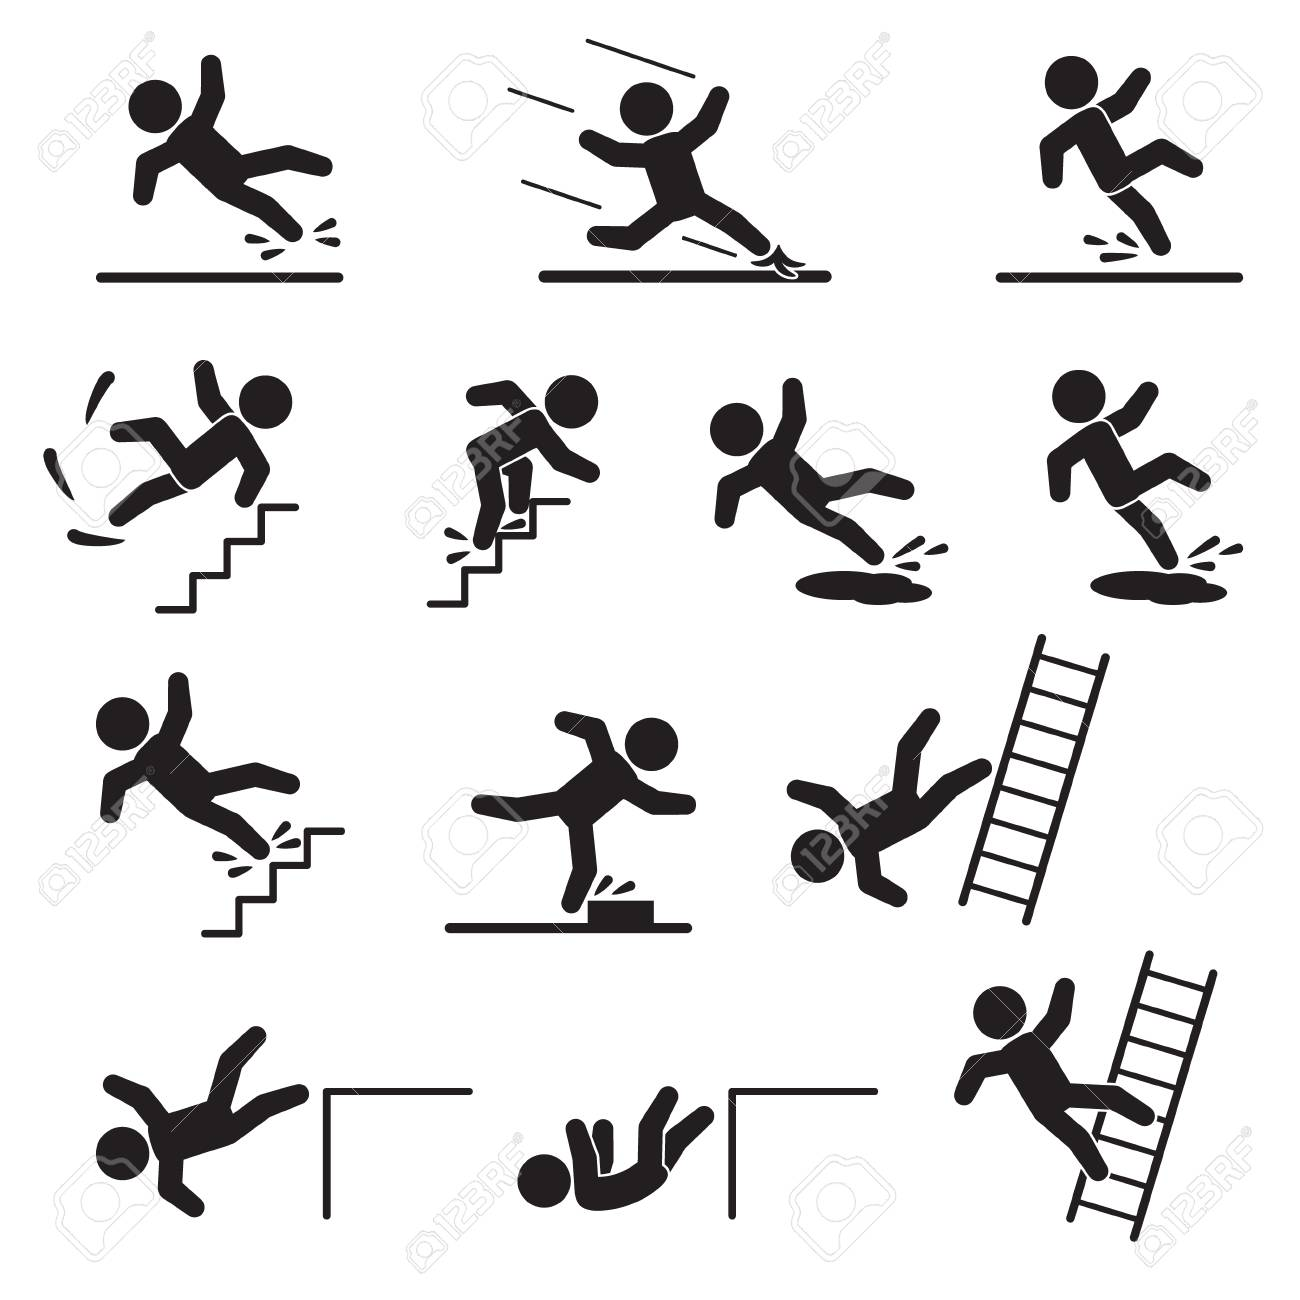 People falling or slipping icon set. Vector. - 104302979